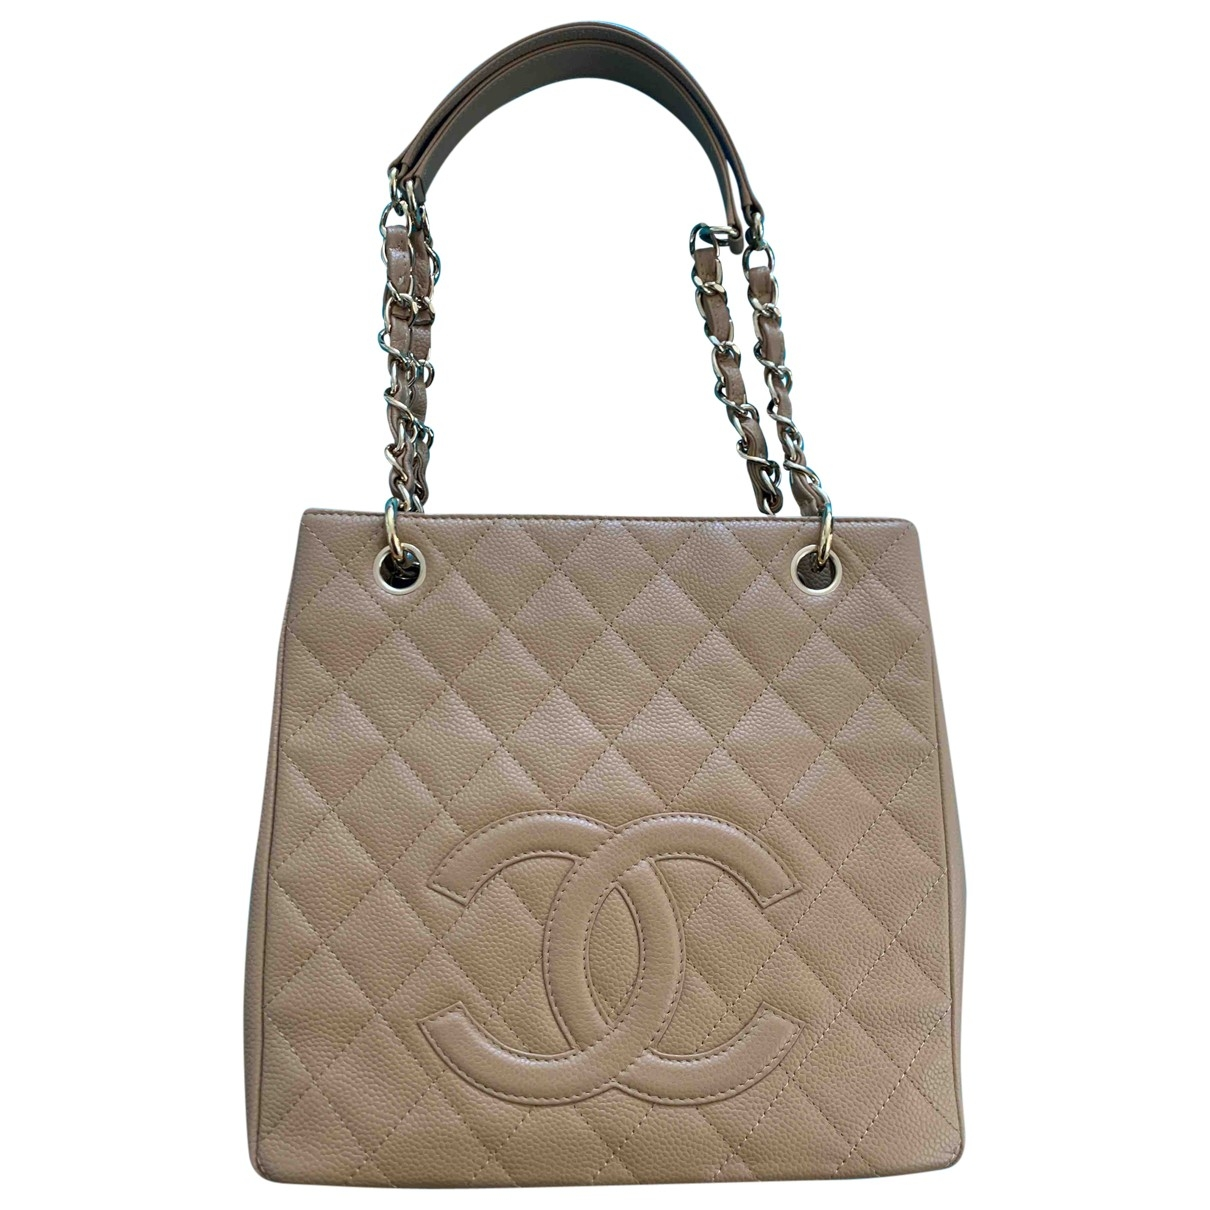 Chanel Petite Shopping Tote Handtasche in  Beige Leder